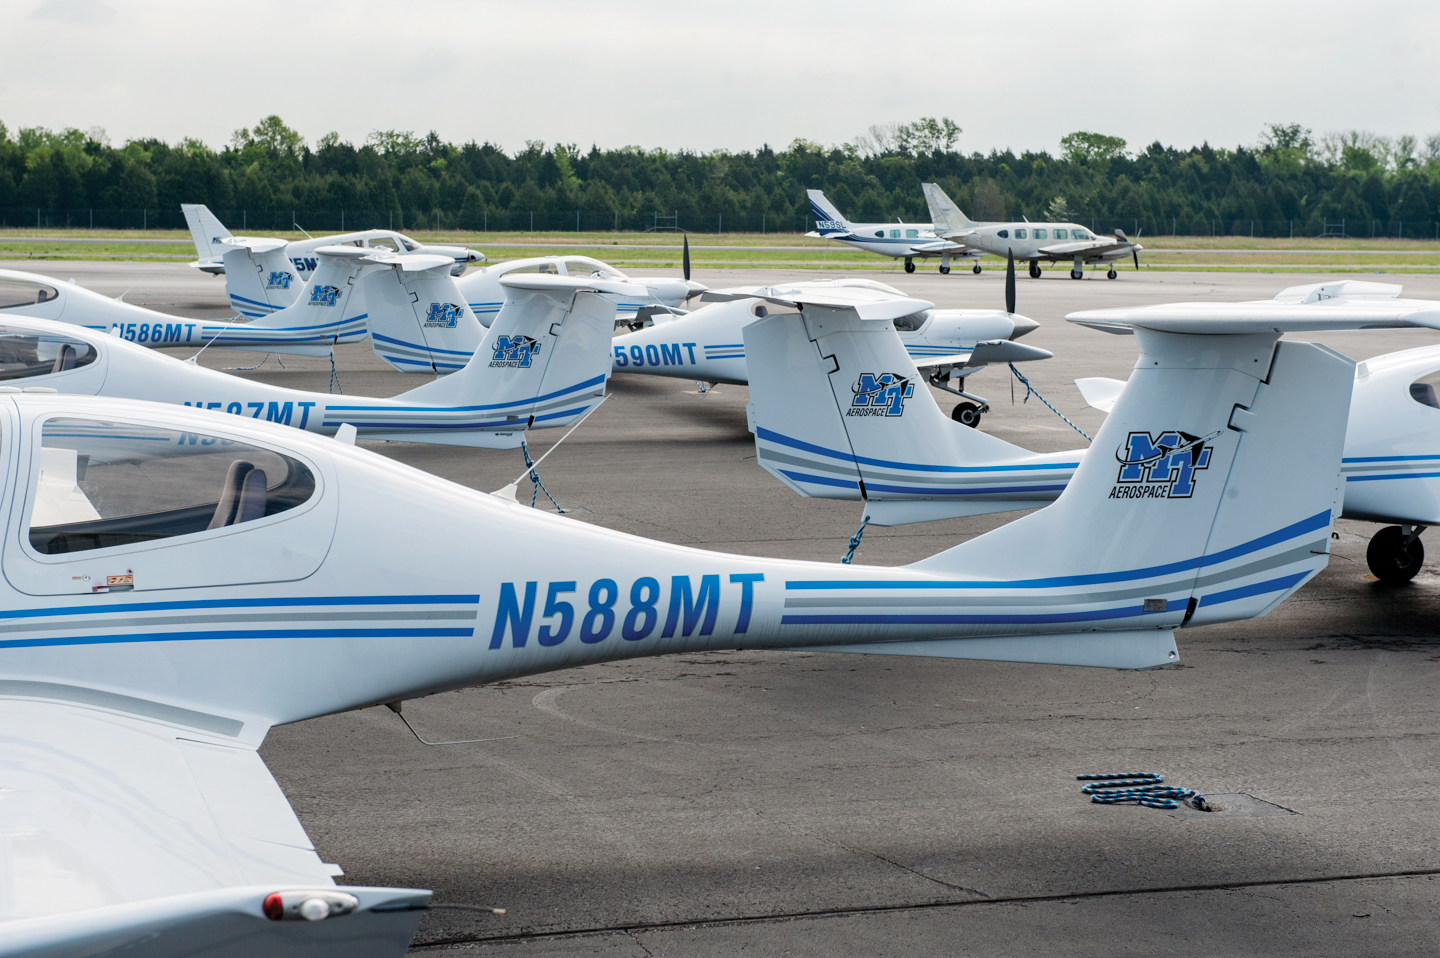 This 2017 file photo shows part of the fleet of MTSU Aerospace Department planes at Murfreesboro Airport. (MTSU file photo)